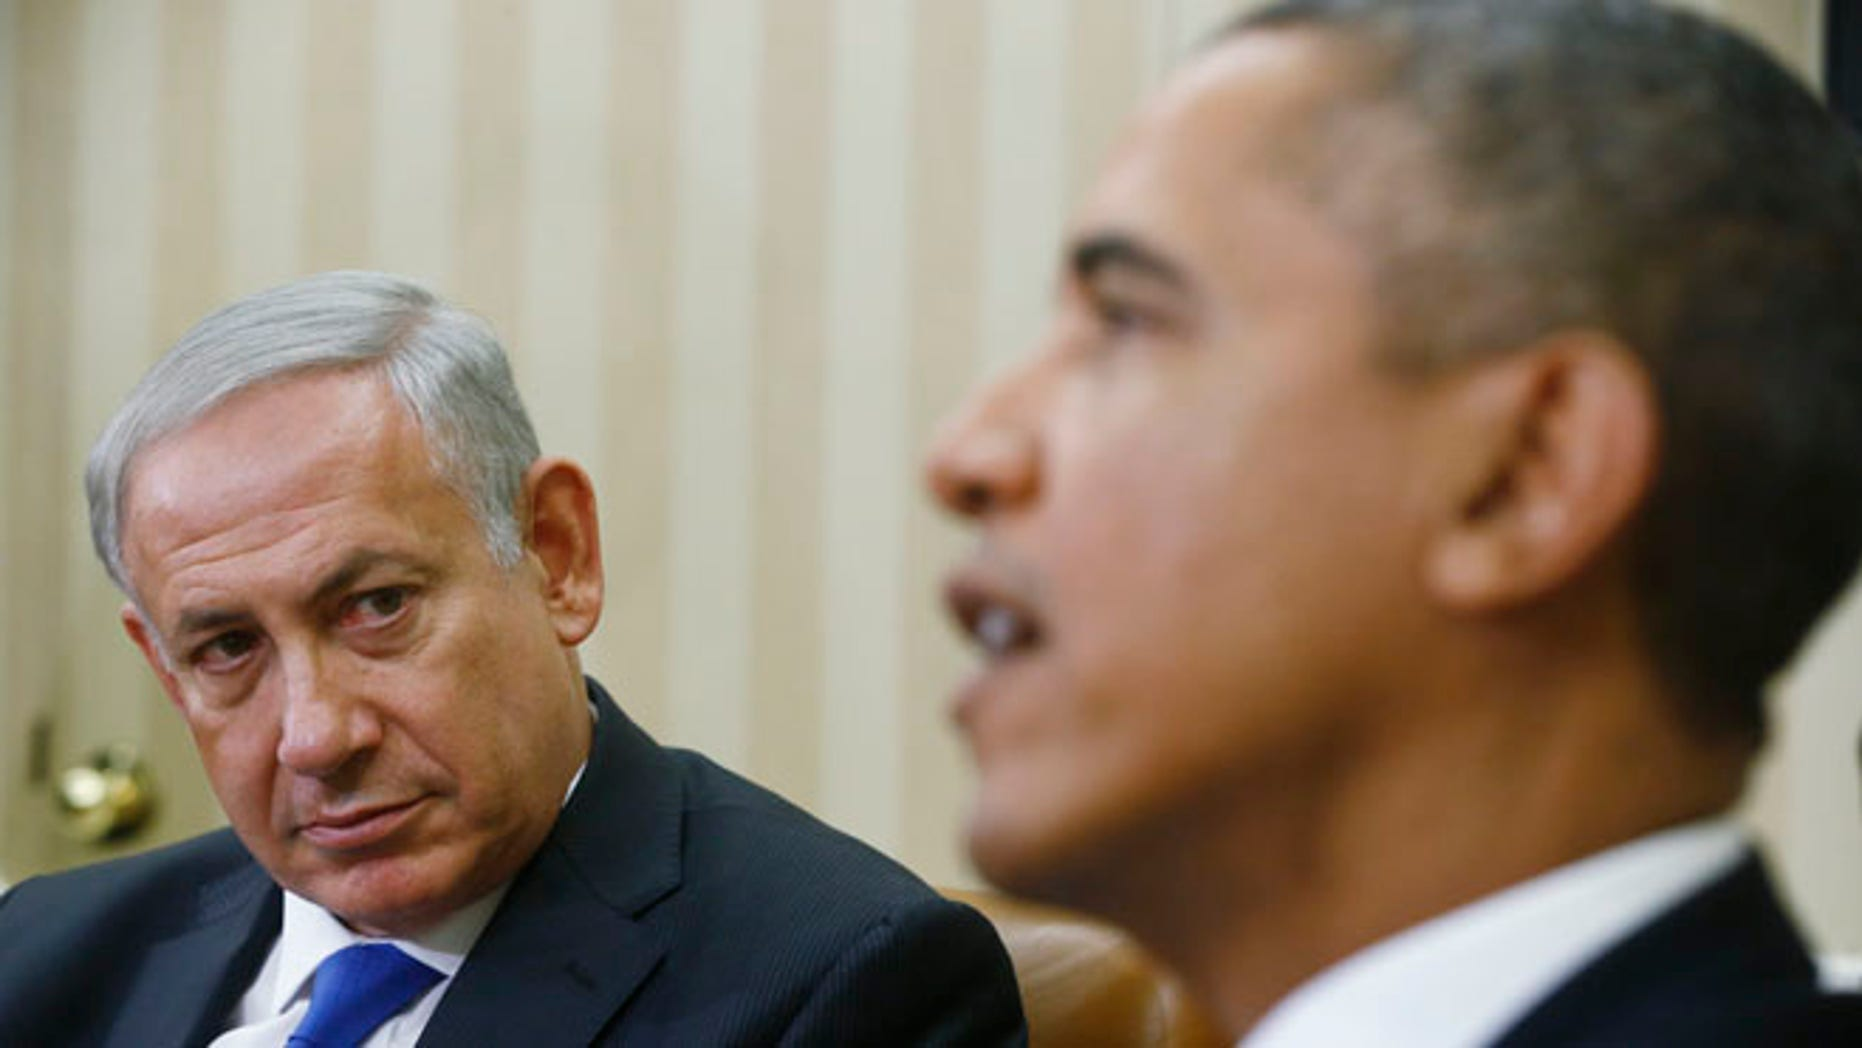 FILE - In this Sept. 30, 2013 file photo, President Barack Obama meets with Israeli Prime Minister Benjamin Netanyahu in the Oval Office at the White House in Washington.